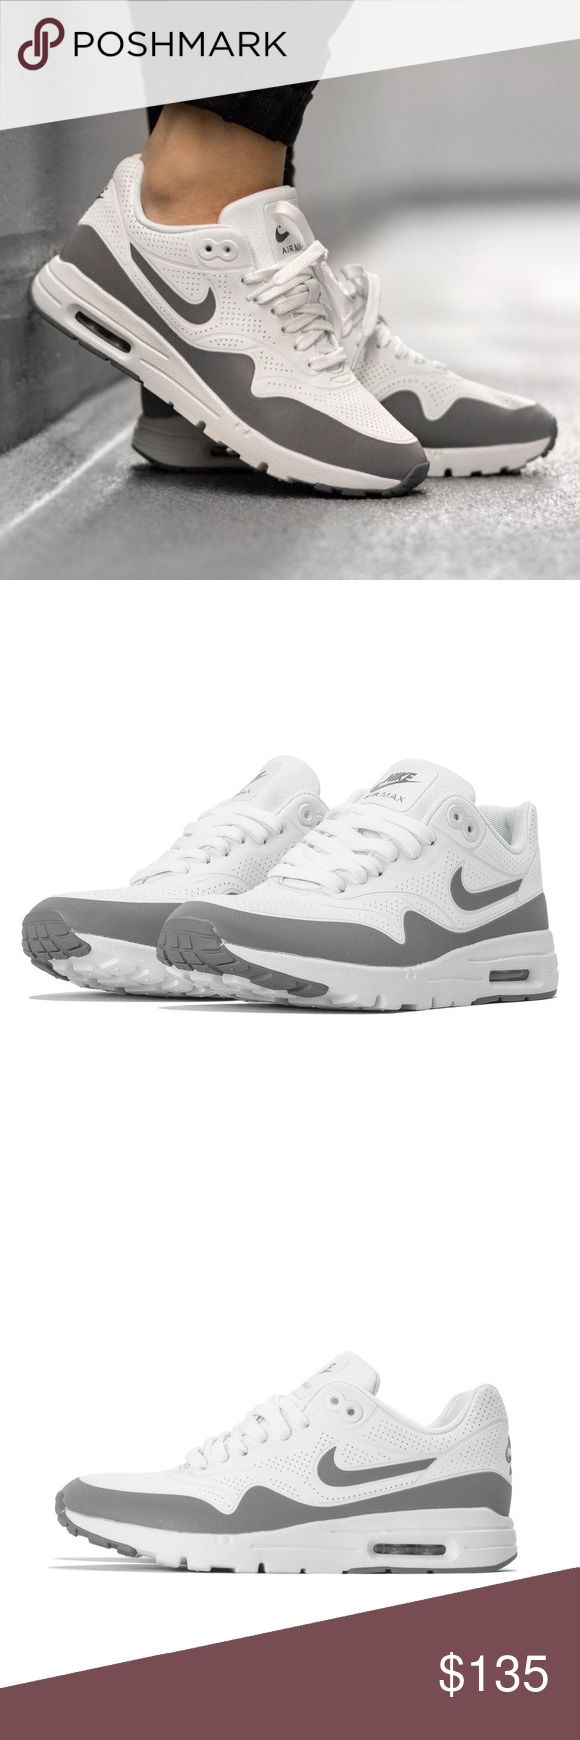 Nike air max Nike air max, grey and white, women's size 5. Super